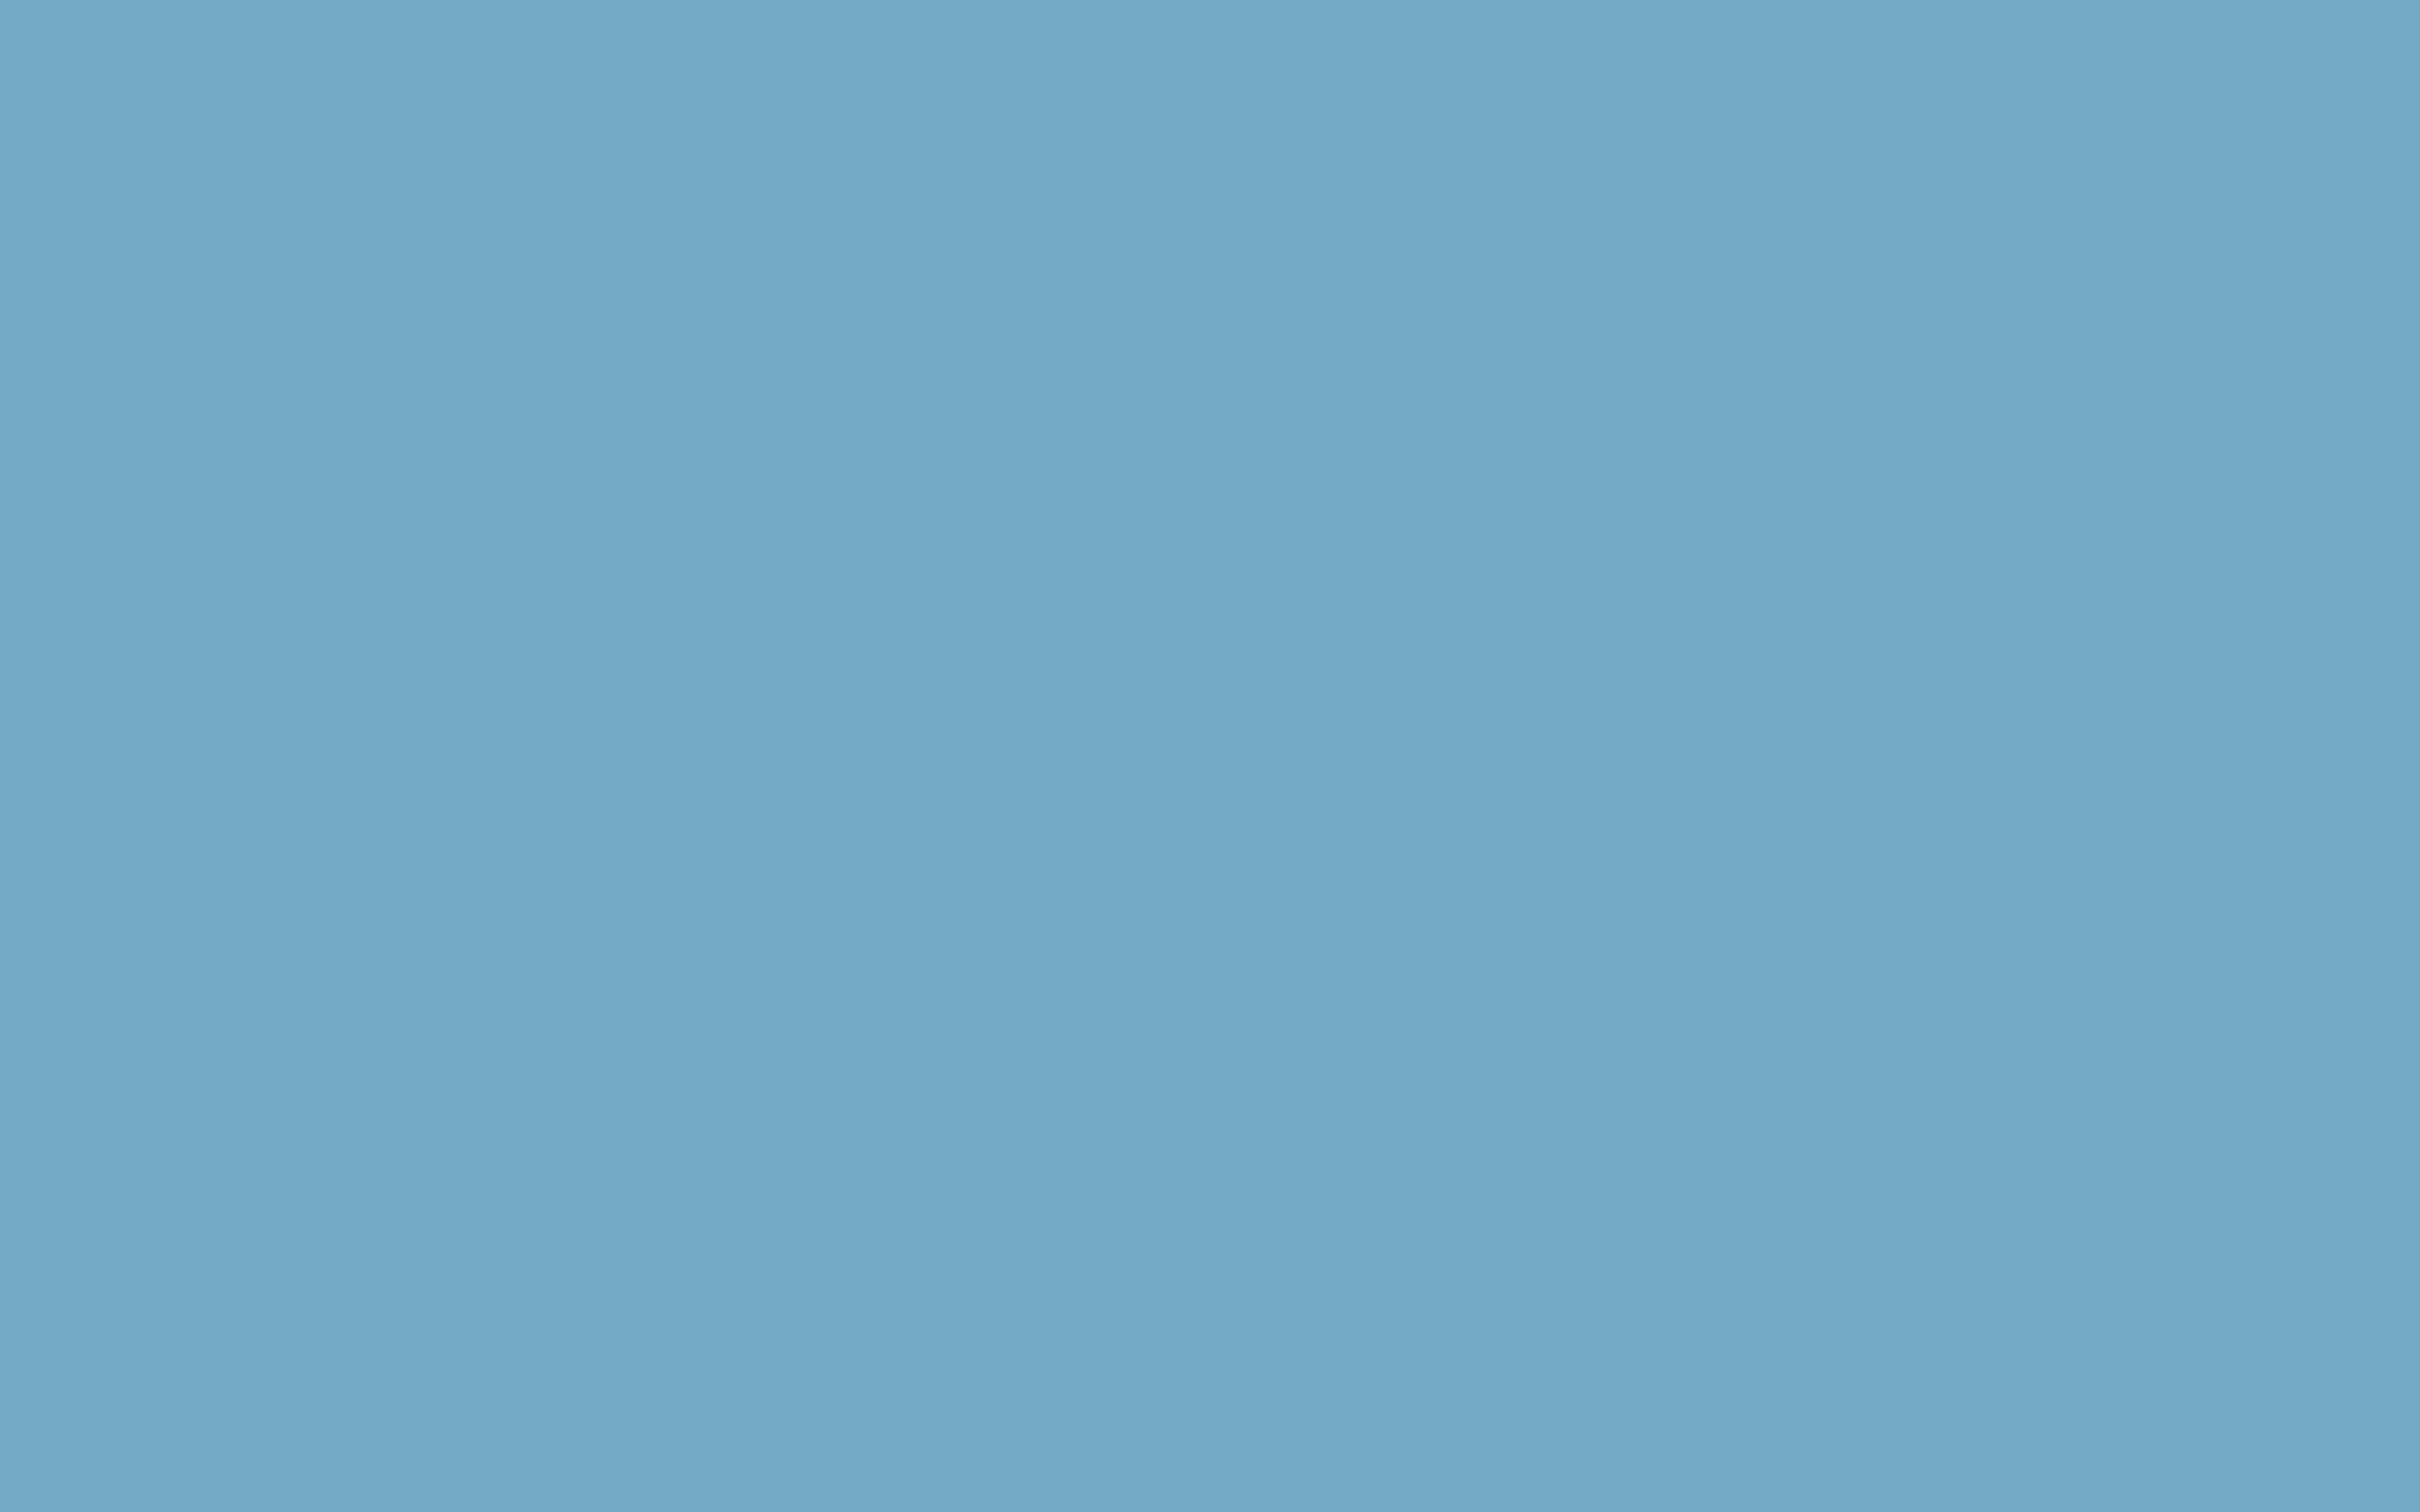 2880x1800 Moonstone Blue Solid Color Background